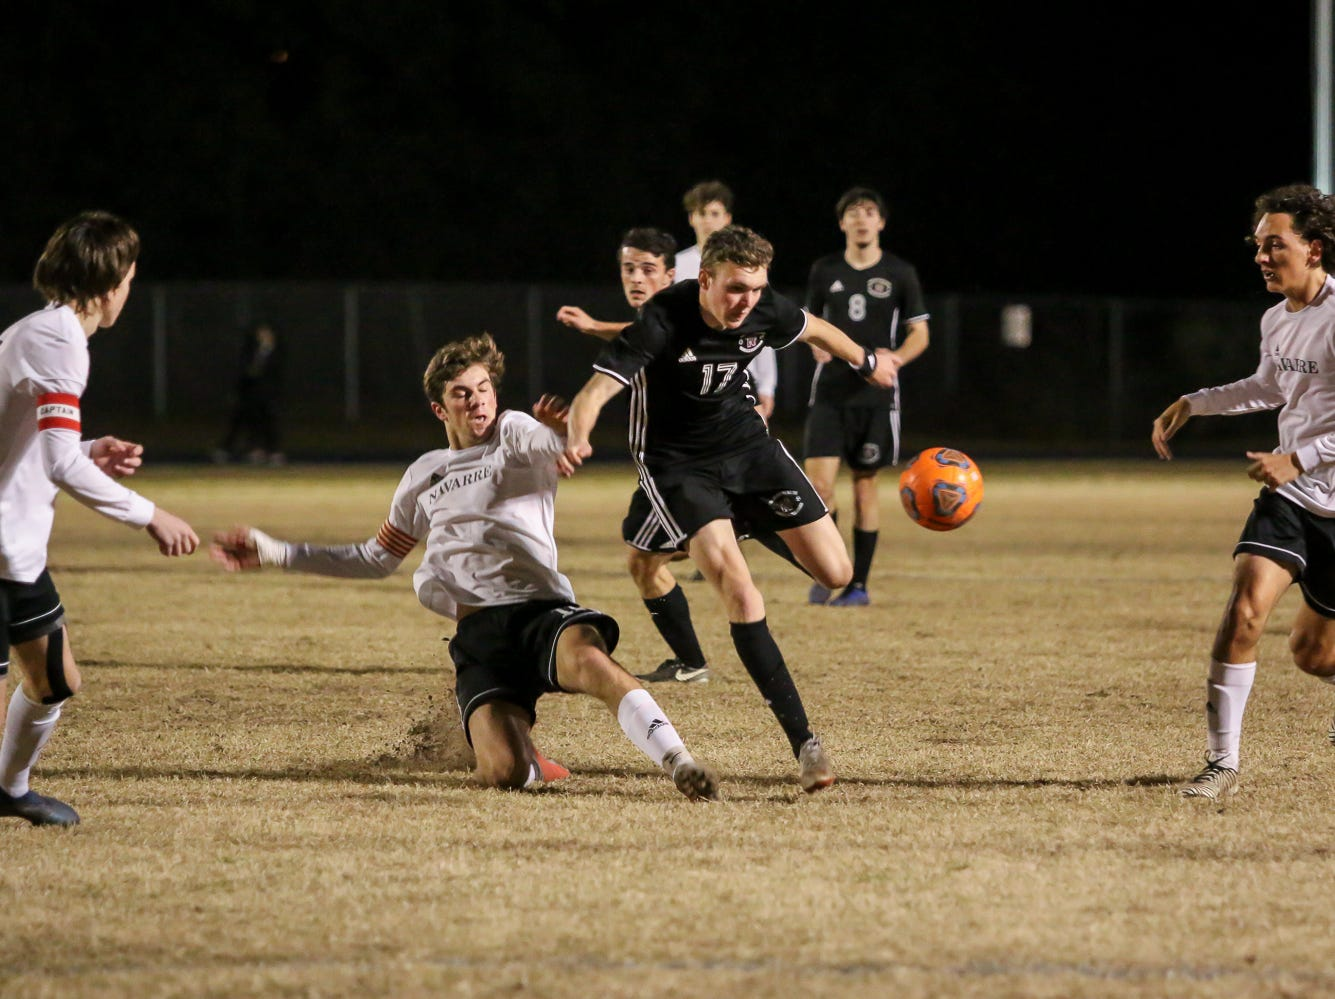 Niceville's Logan Harrelson (17) chases after the ball against Navarre in the District 1-4A championship game at Washington High School on Friday, February 1, 2019. For the second straight year, Niceville shut-out Navarre to win the championship. Last year, the score was 6-0 and this year it was 7-0.